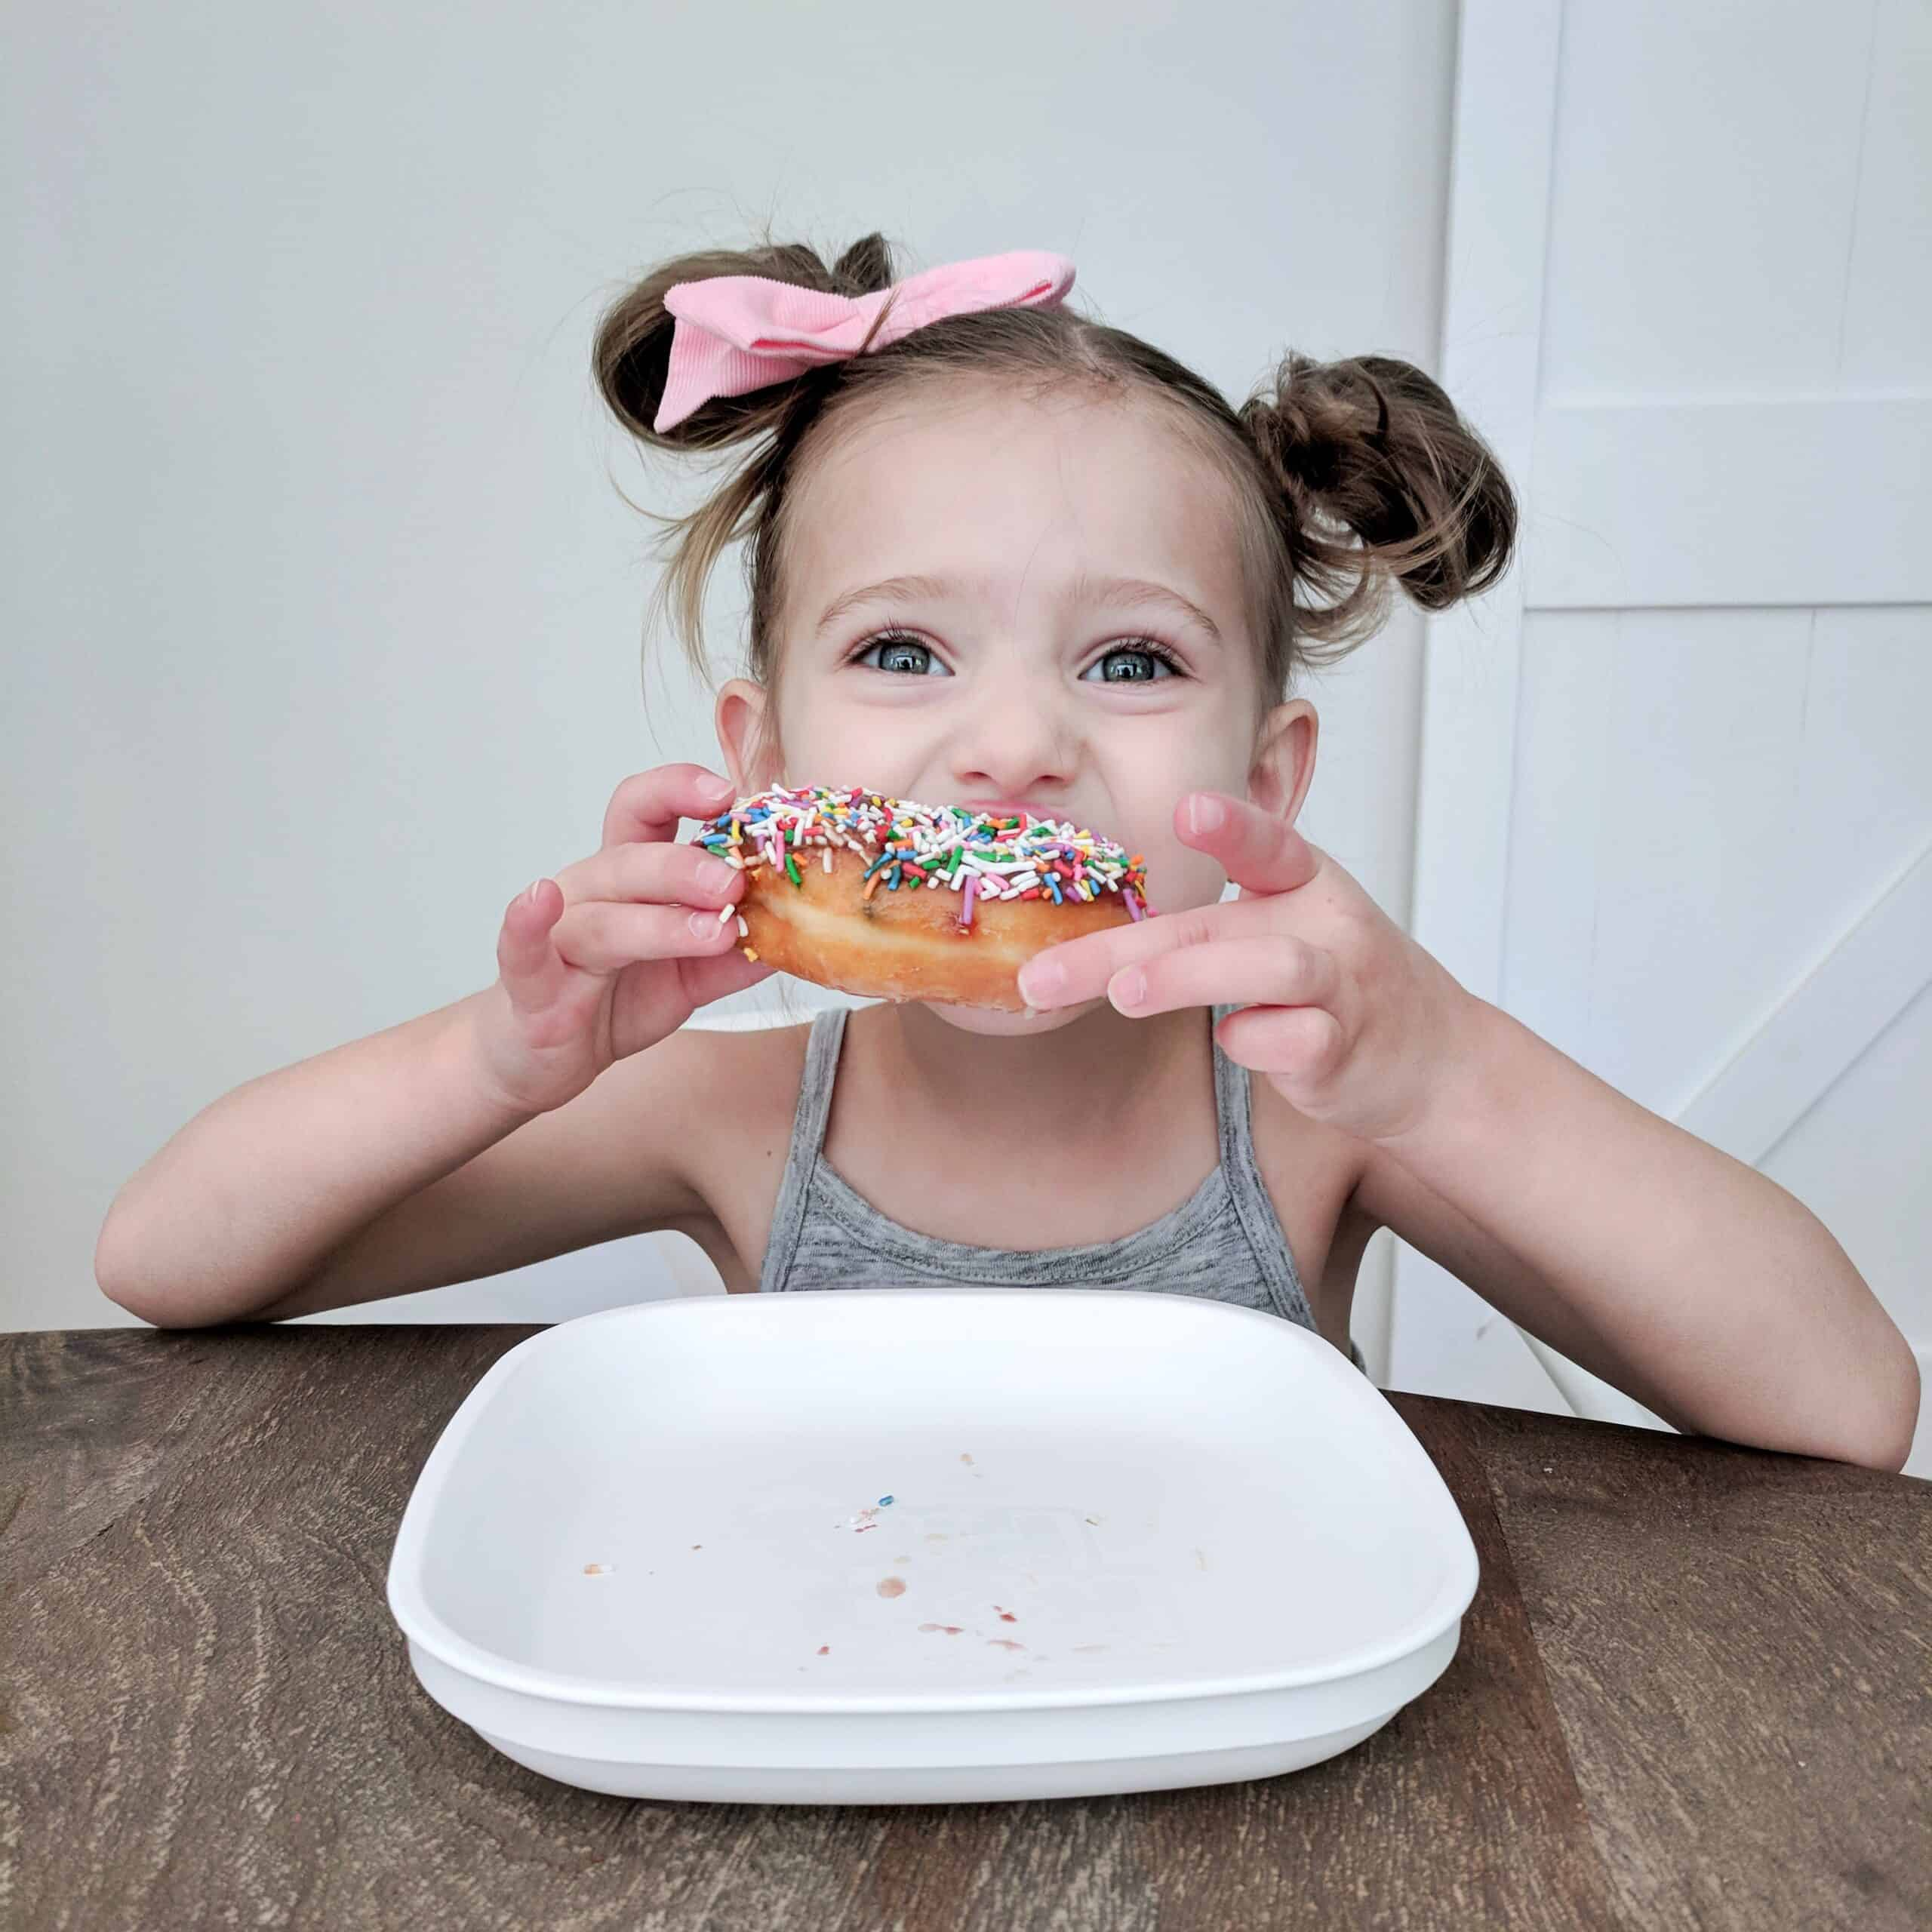 little girl eating a donut